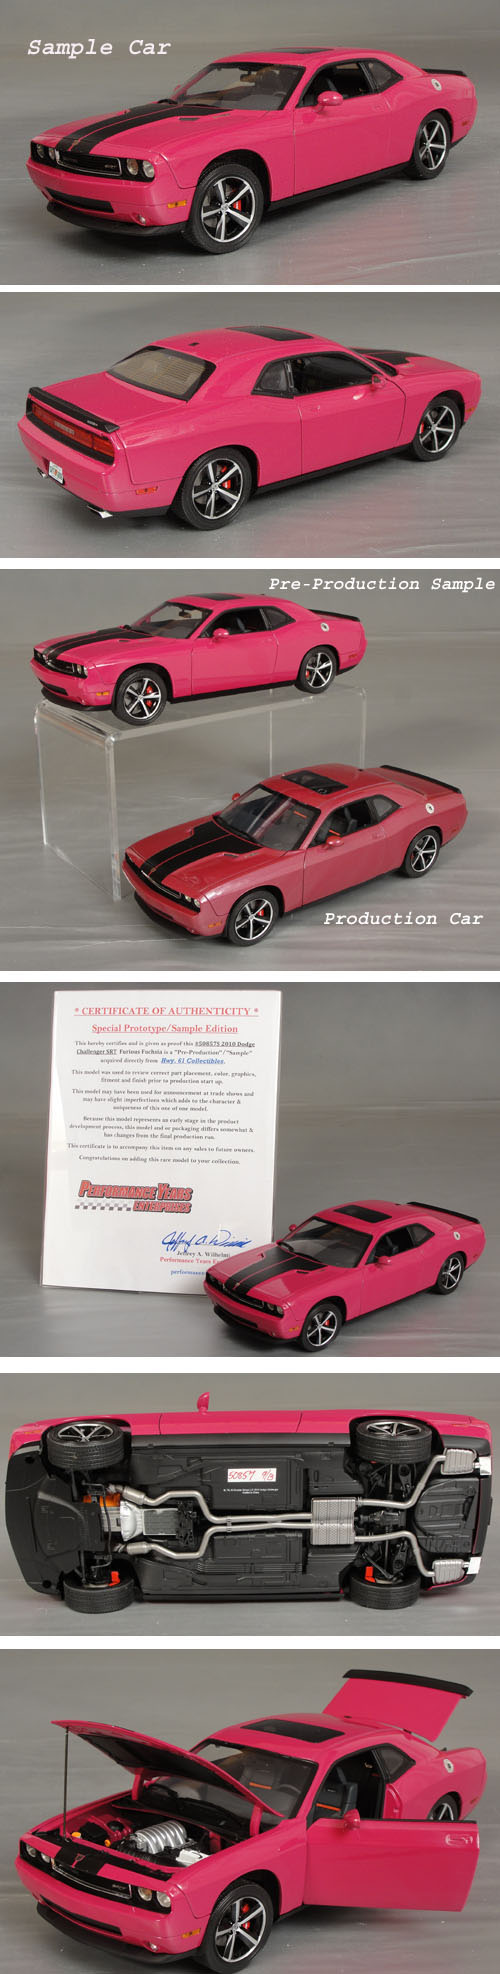 2010 Dodge Challenger SRT * FACTORY SAMPLE CAR *